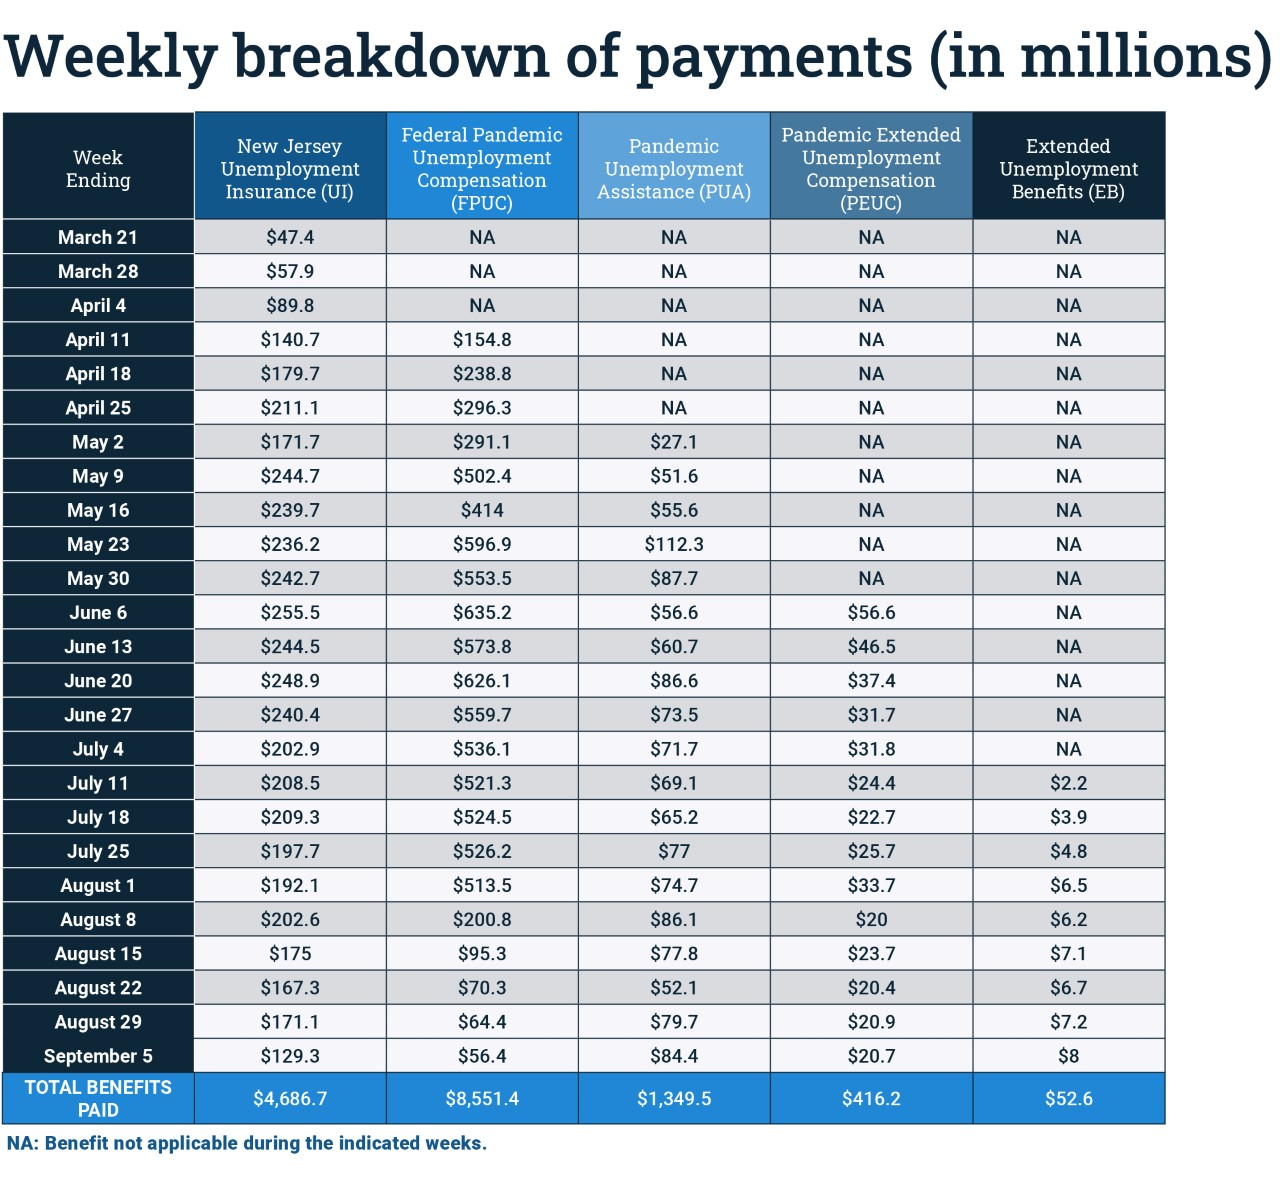 payment breakdown for the week of Sep 10, 2020